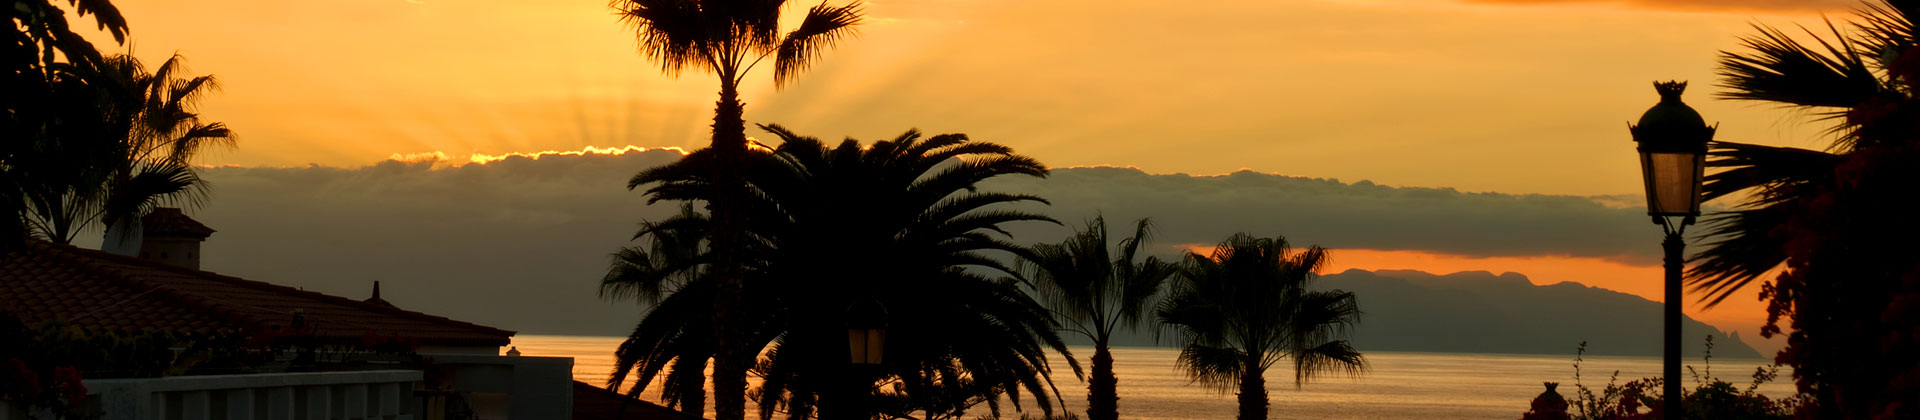 https://www.goodmorningtenerife.com/wp-content/uploads/2014/08/03_slide_sunset_GM_Tenerife.jpg